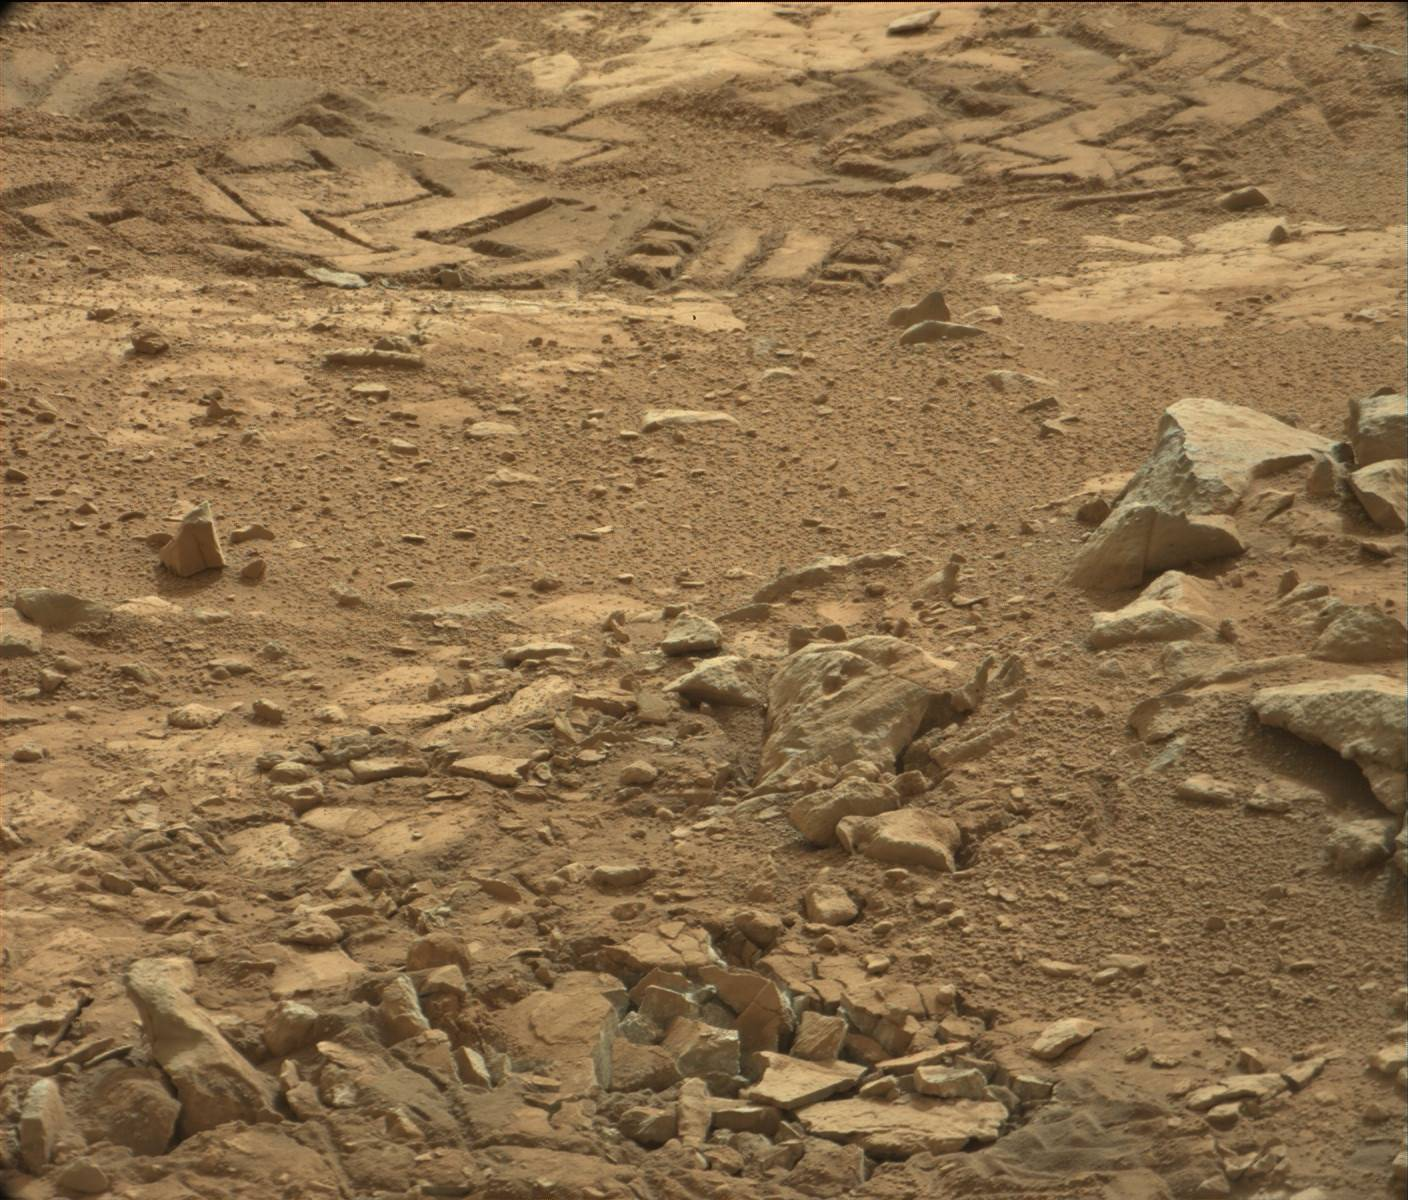 nasa pictures of life on mars - photo #12